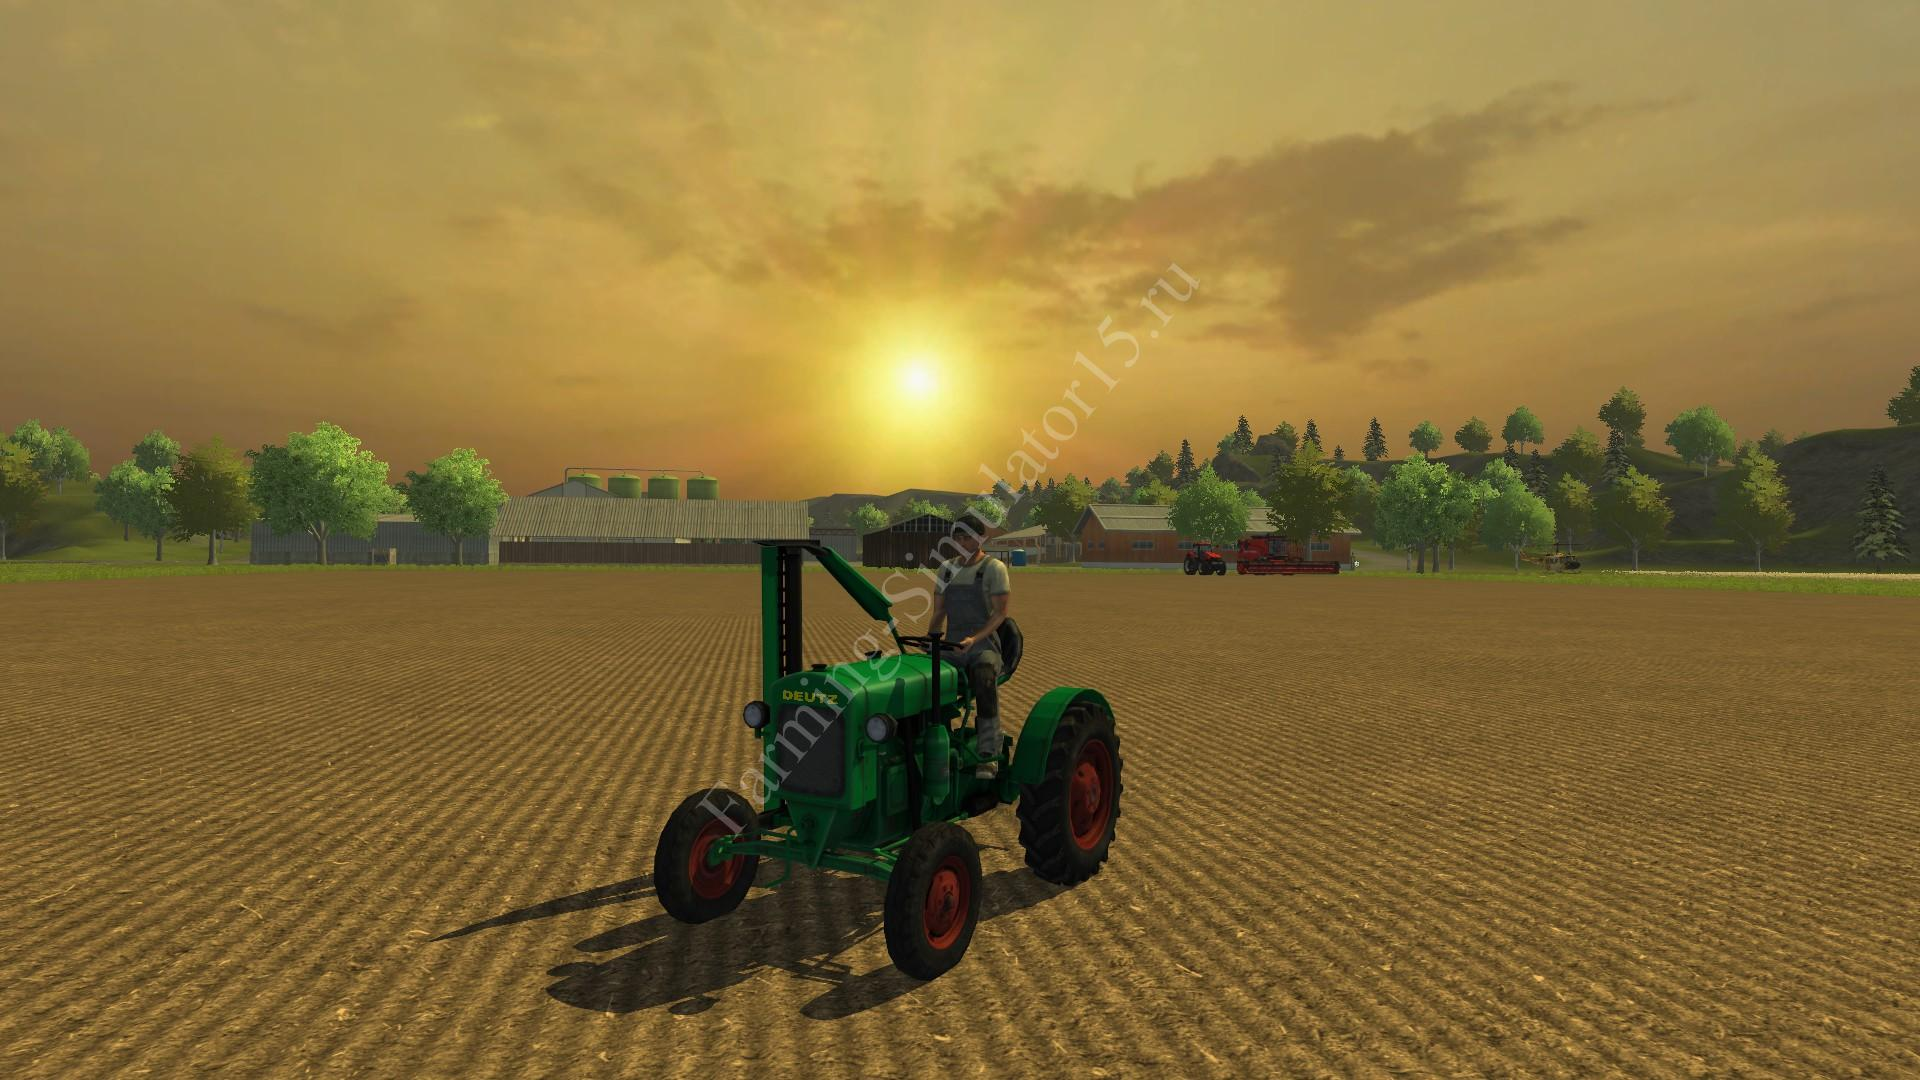 Мод трактора Deutz F 1 M 414 v 3.0 Farming Simulator 2013, Farming Simulator 13